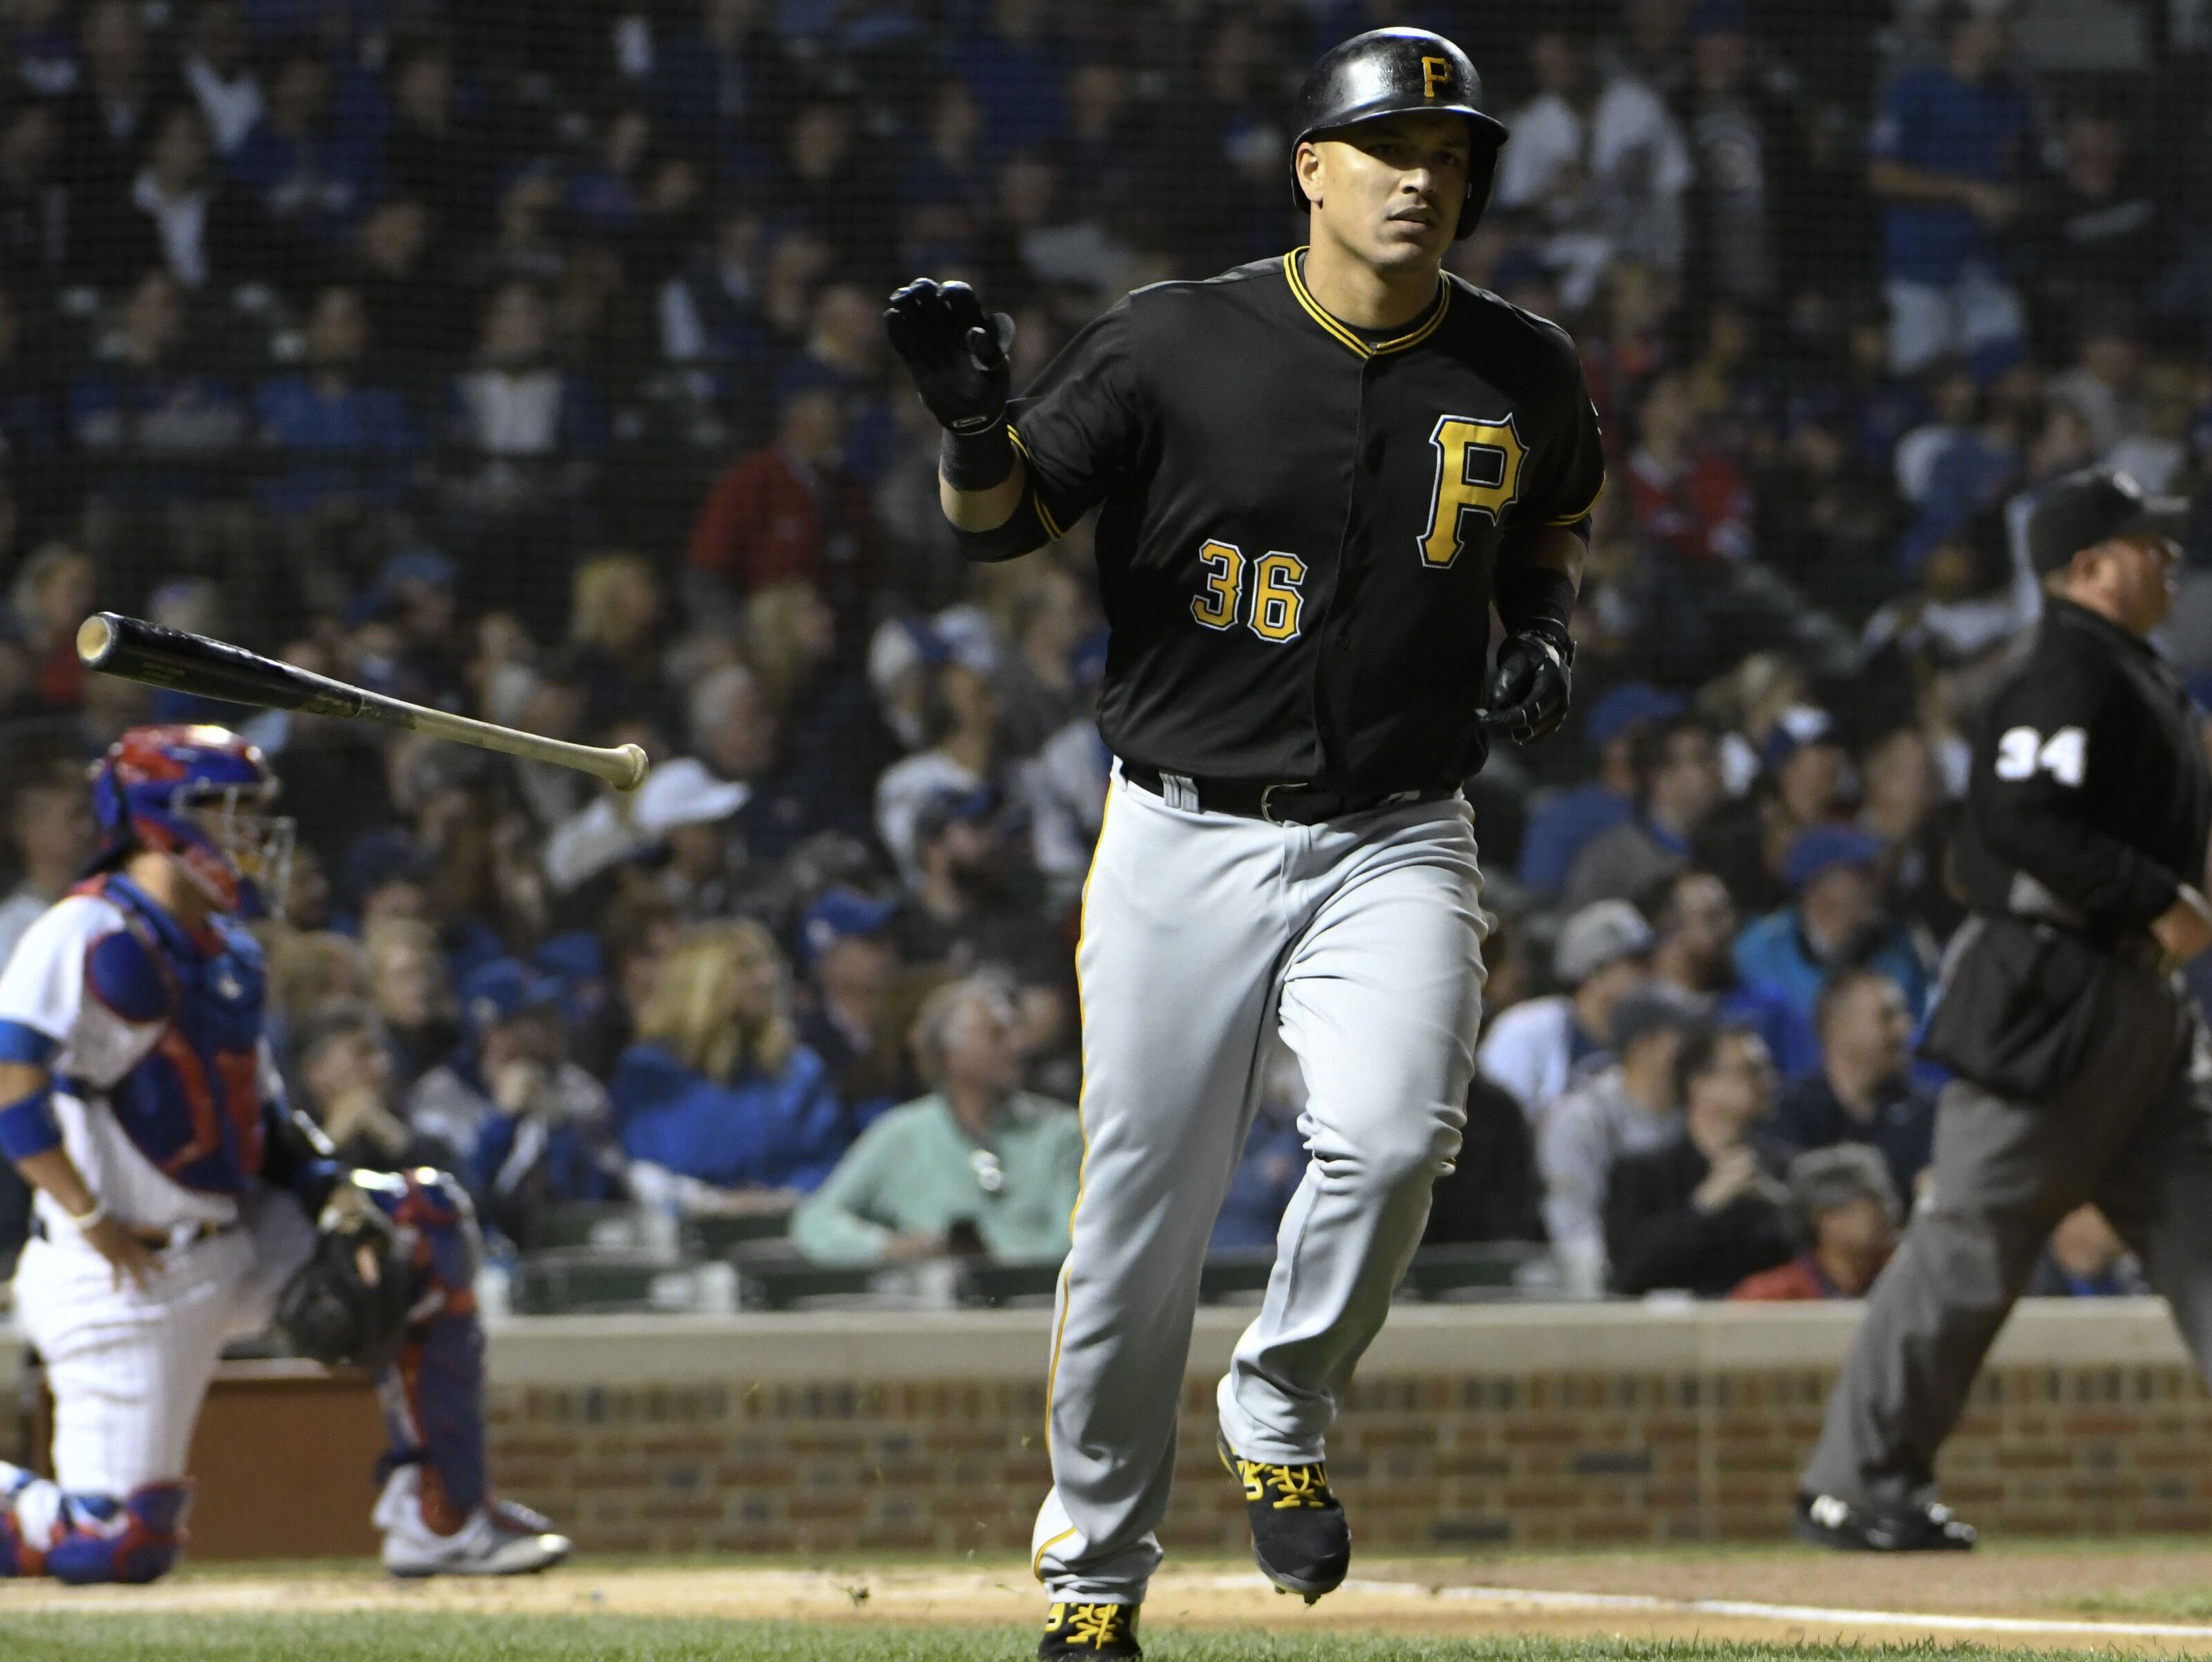 d89d21c6225 What Will 2019 Hold For The Pittsburgh Pirates Jose Osuna